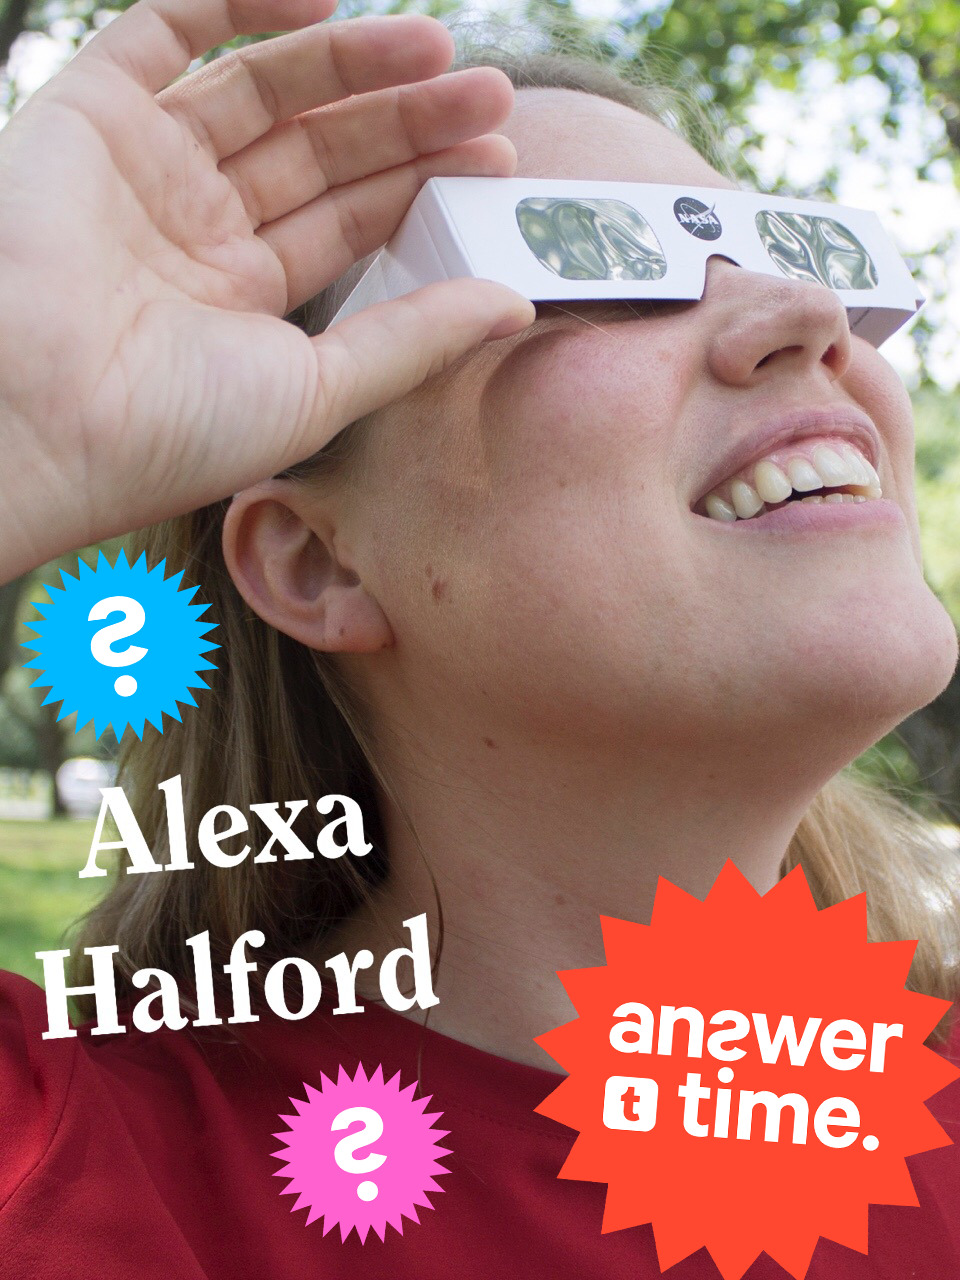 The total solar eclipse is coming! Here's your chance to ask an eclipse scientist your questions! Have questions about the upcoming total solar eclipse on August 21? Join our Tumblr Answer Time session on Thursday, August 17 from 3:00 – 4:00 p.m....